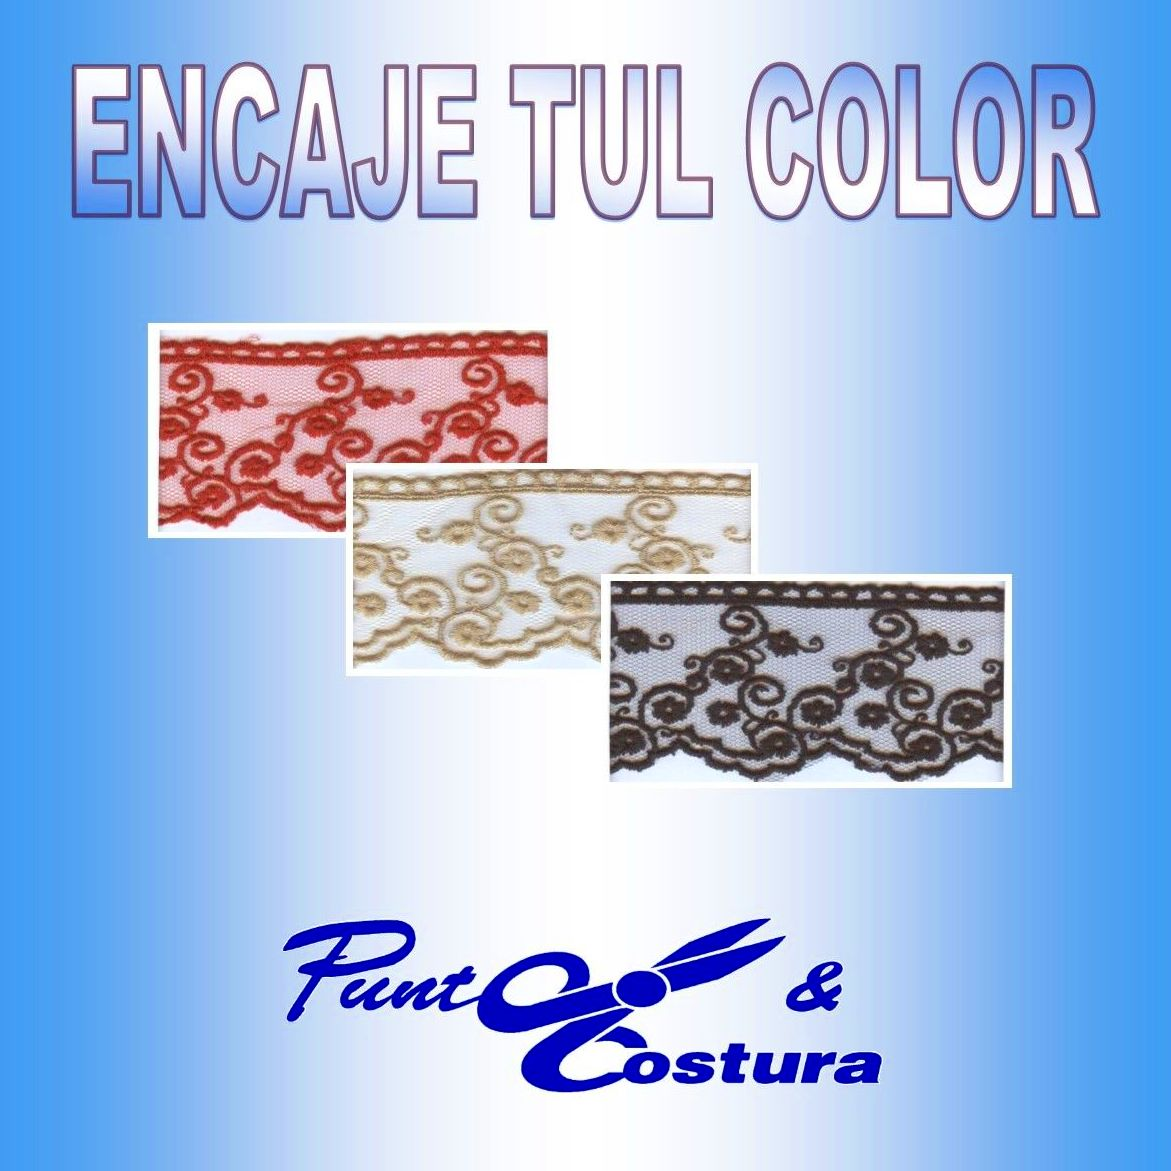 ENCAJES TUL COLOR }}